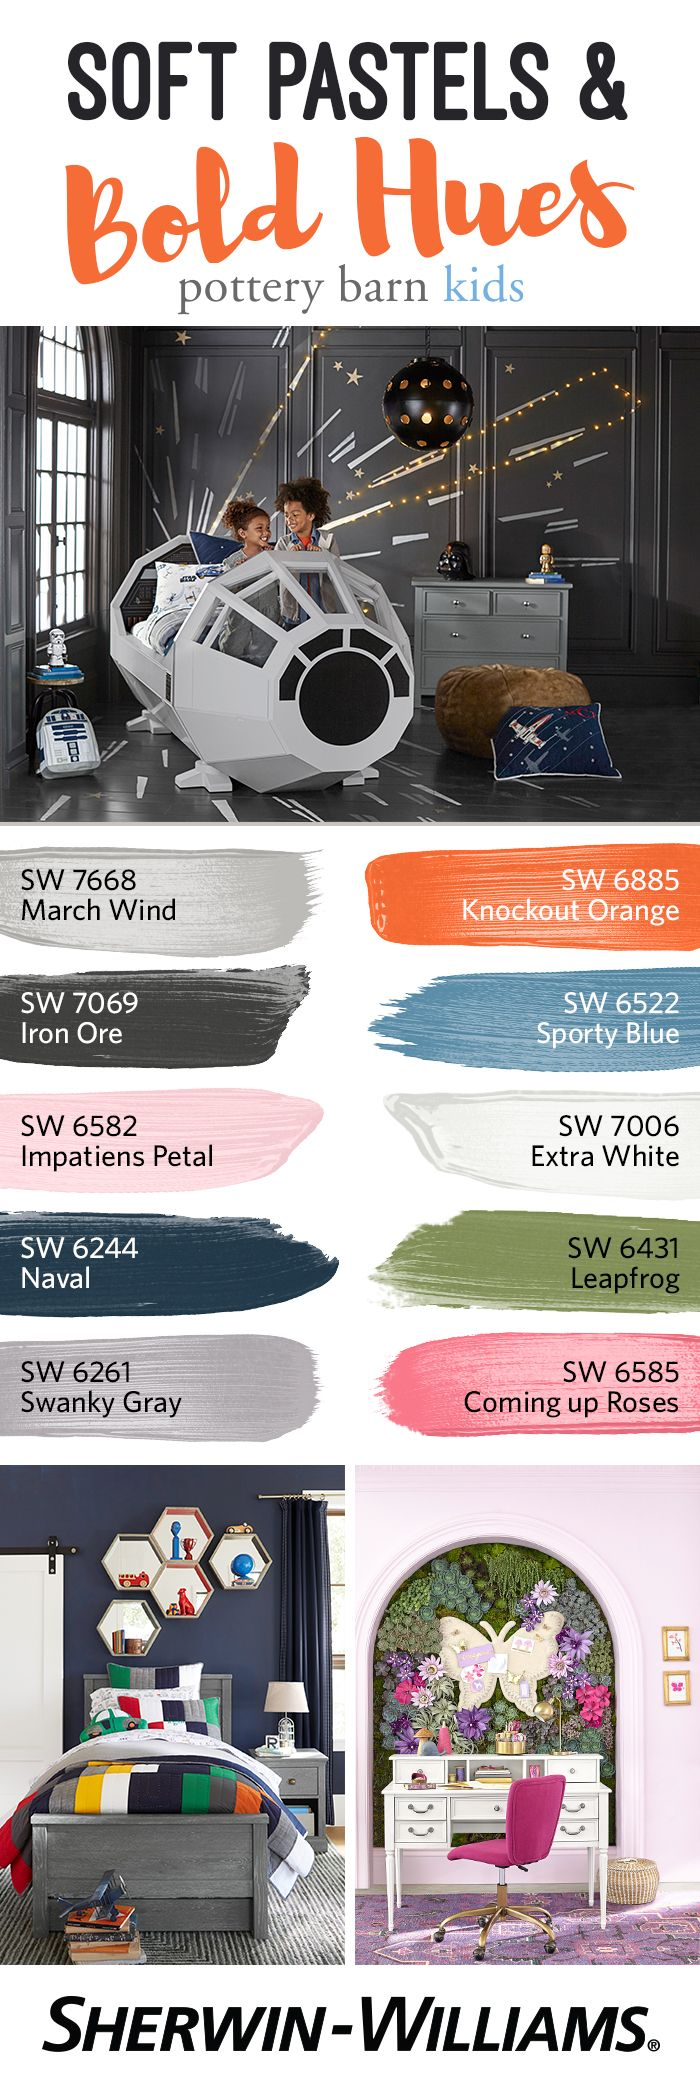 Pottery barn paint colors 2013 - Let The Seasons Inspire You With Bold Fall Hues Like Knockout Orange Sw 6885 And Iron